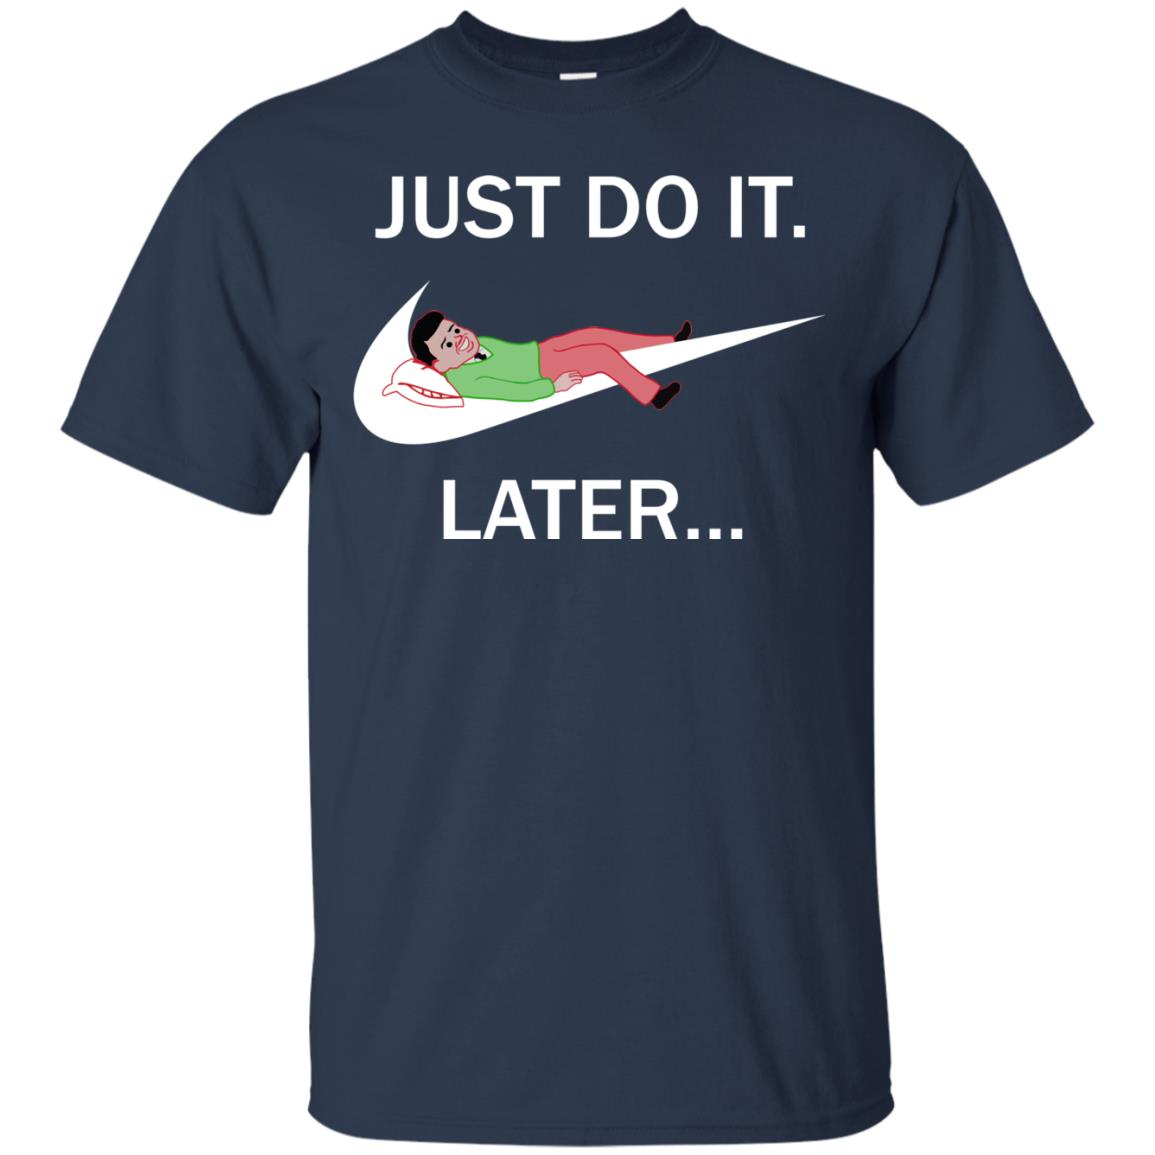 image 490px Just do it later – Joan Cornellà T shirt, hoodies, tank top